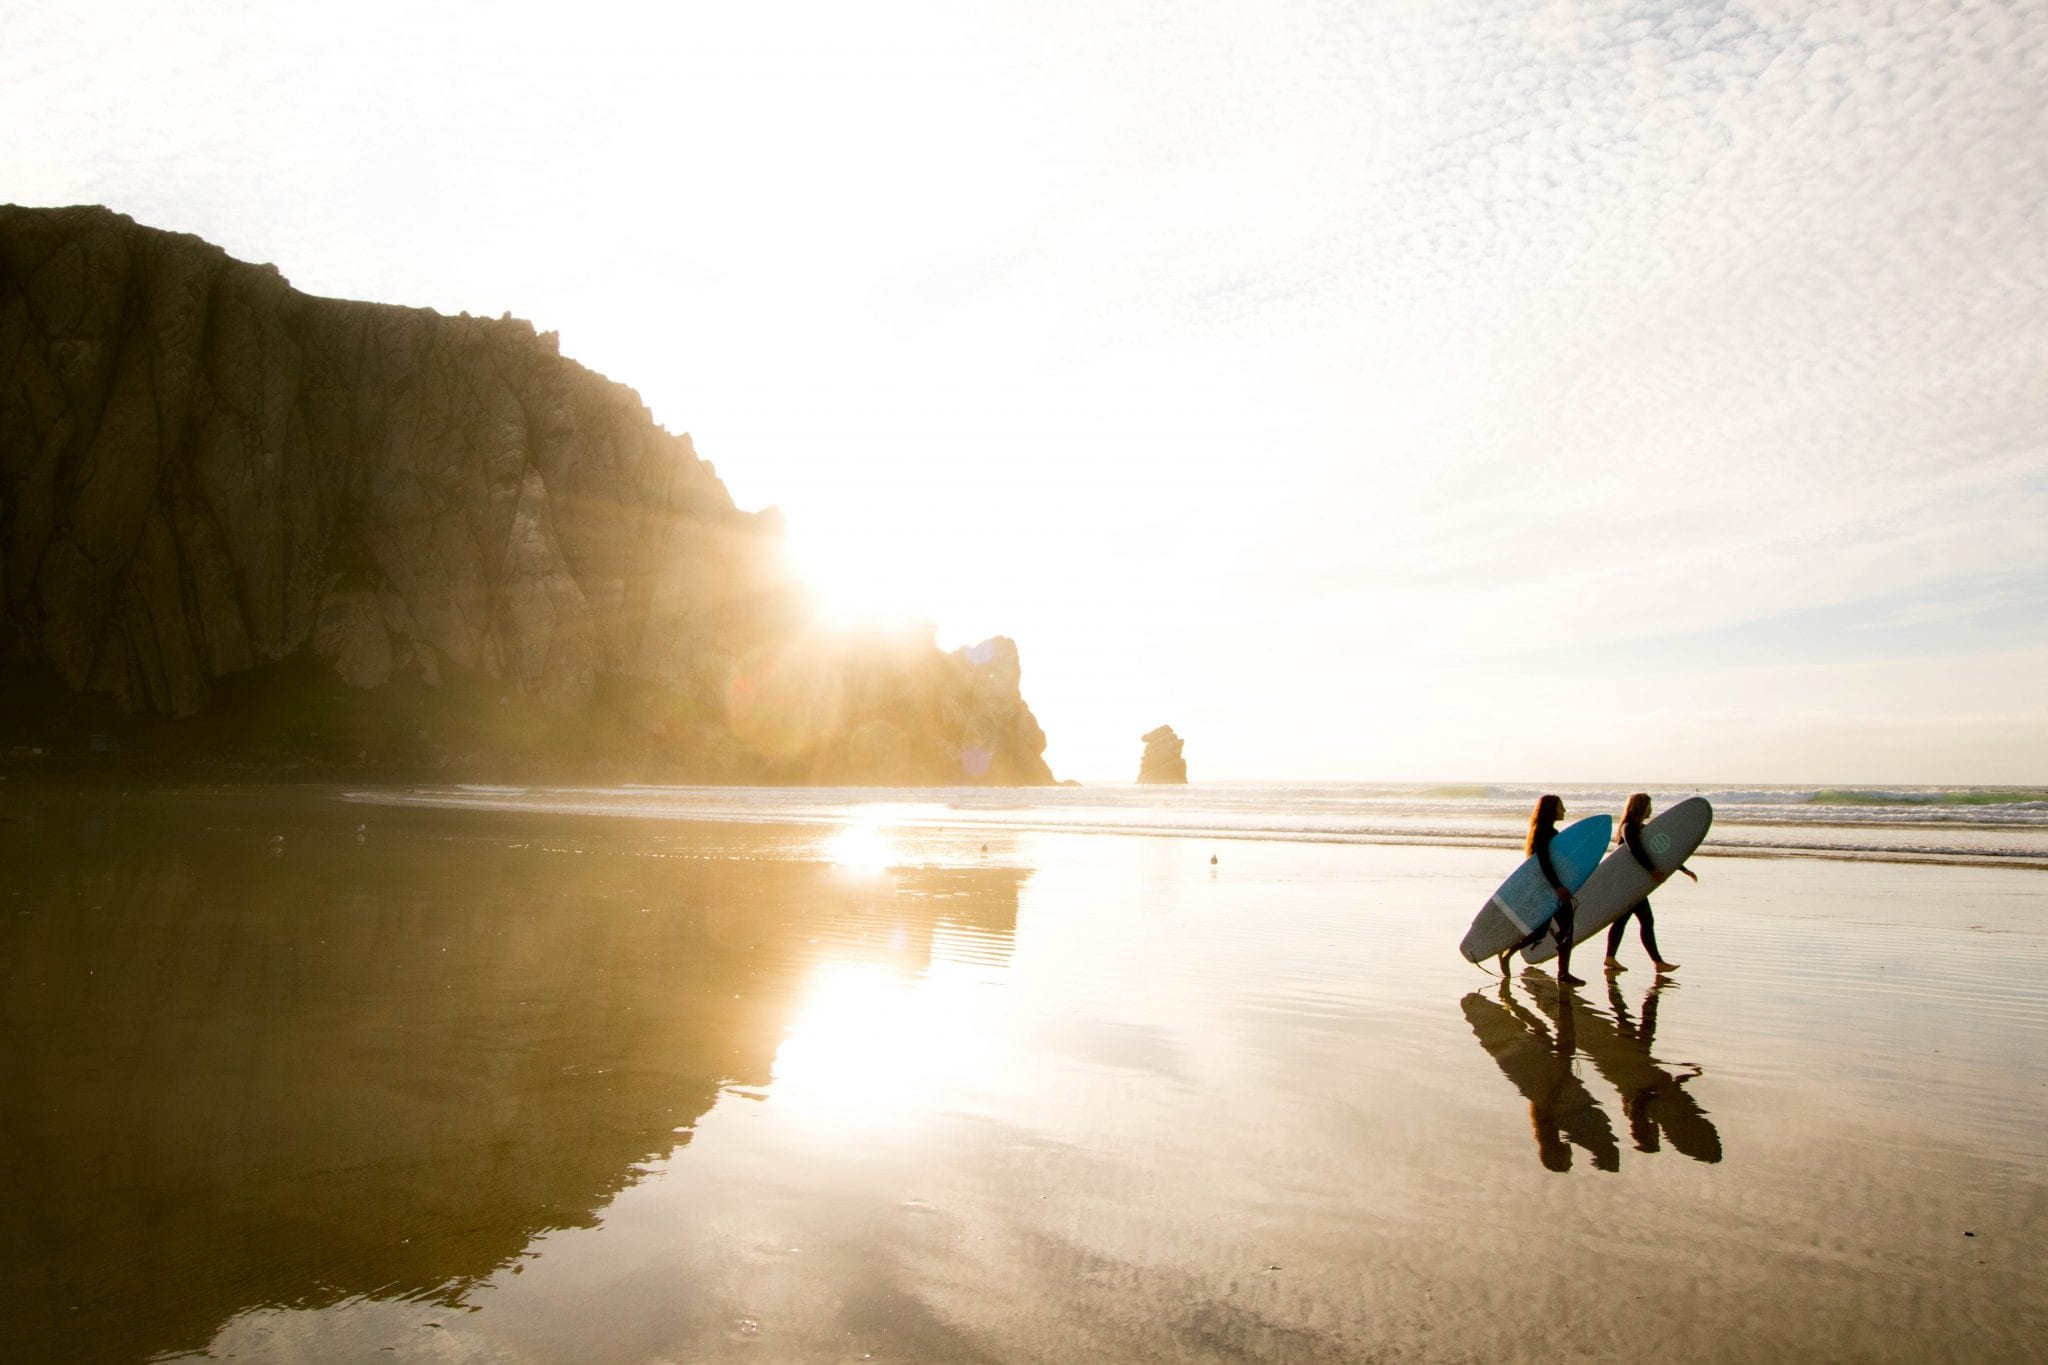 Surfers walking along beach at sunrise